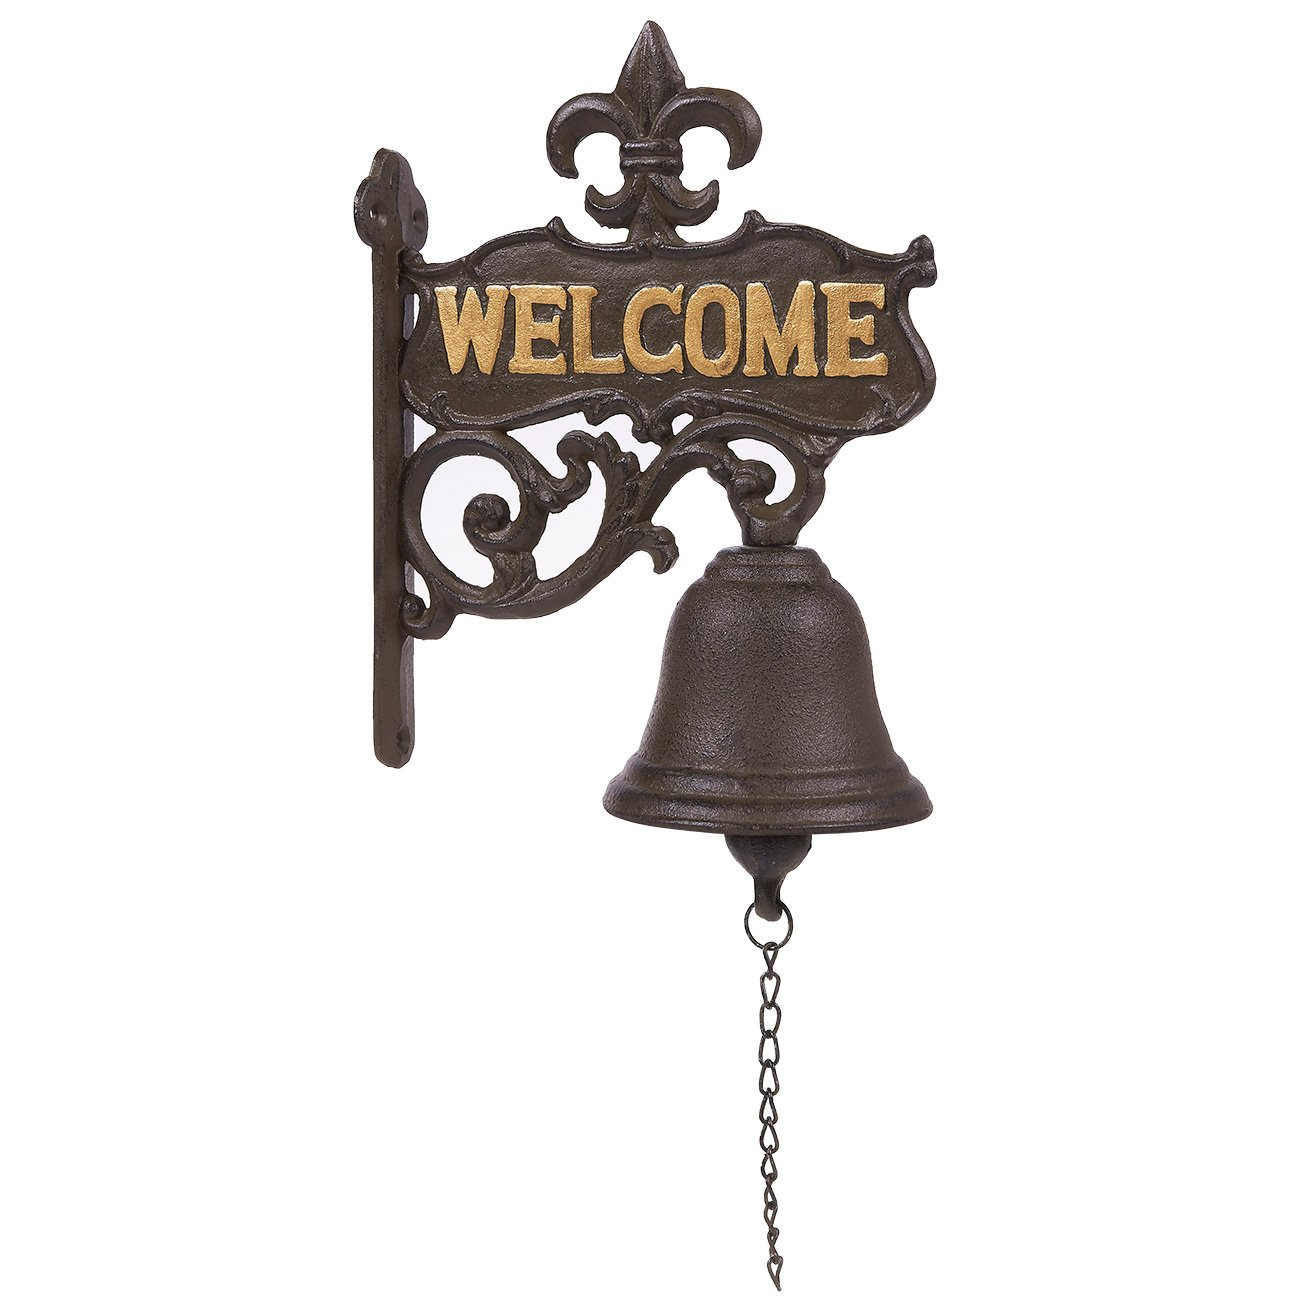 Juvale Cast Iron Bell - Welcome Entry Door Bell, Antique Doorbell Decoration, Front Door, Interior, Exterior Decor, Black - 6.7 x 8.9 x 0.8 inches